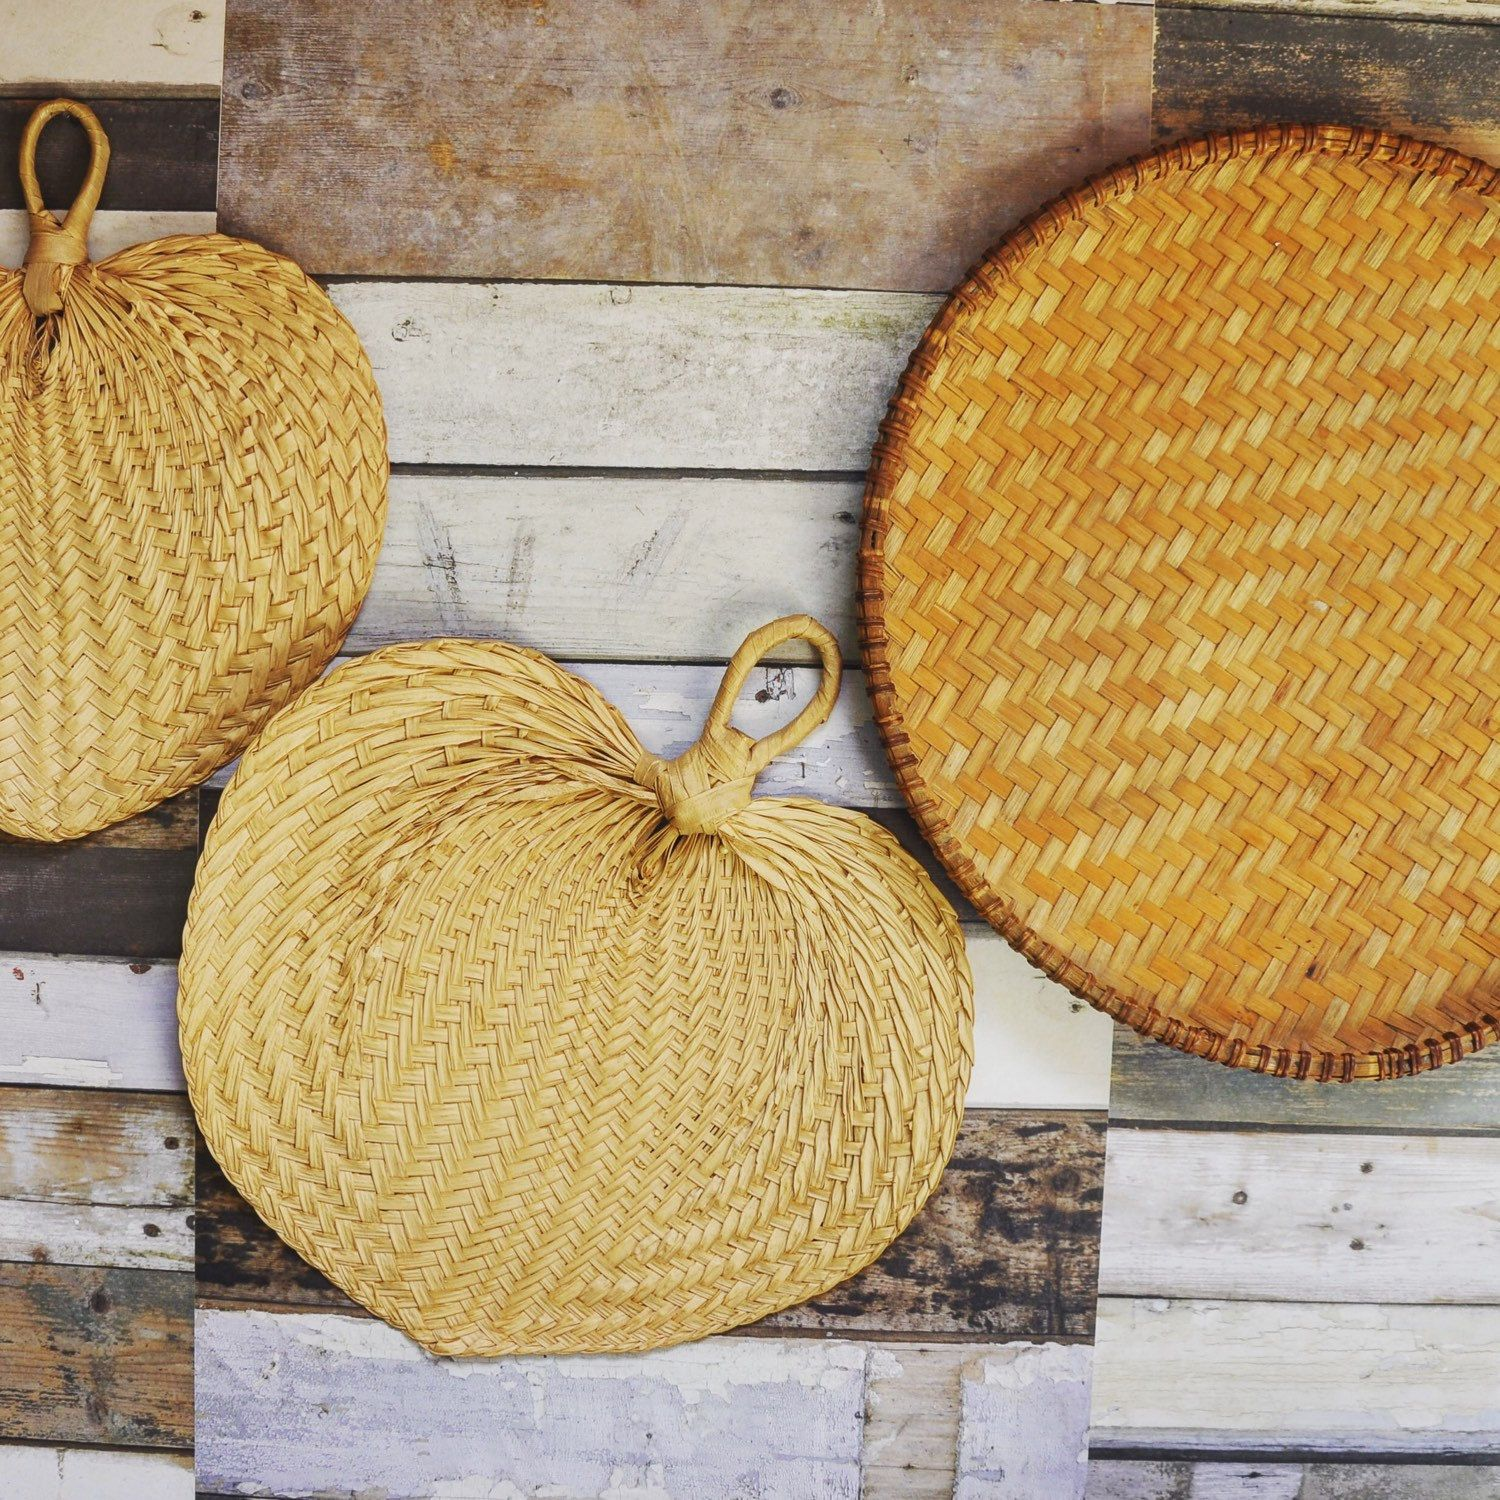 Basket wall decor just listed! | FernHomeVintage | Pinterest | Small ...